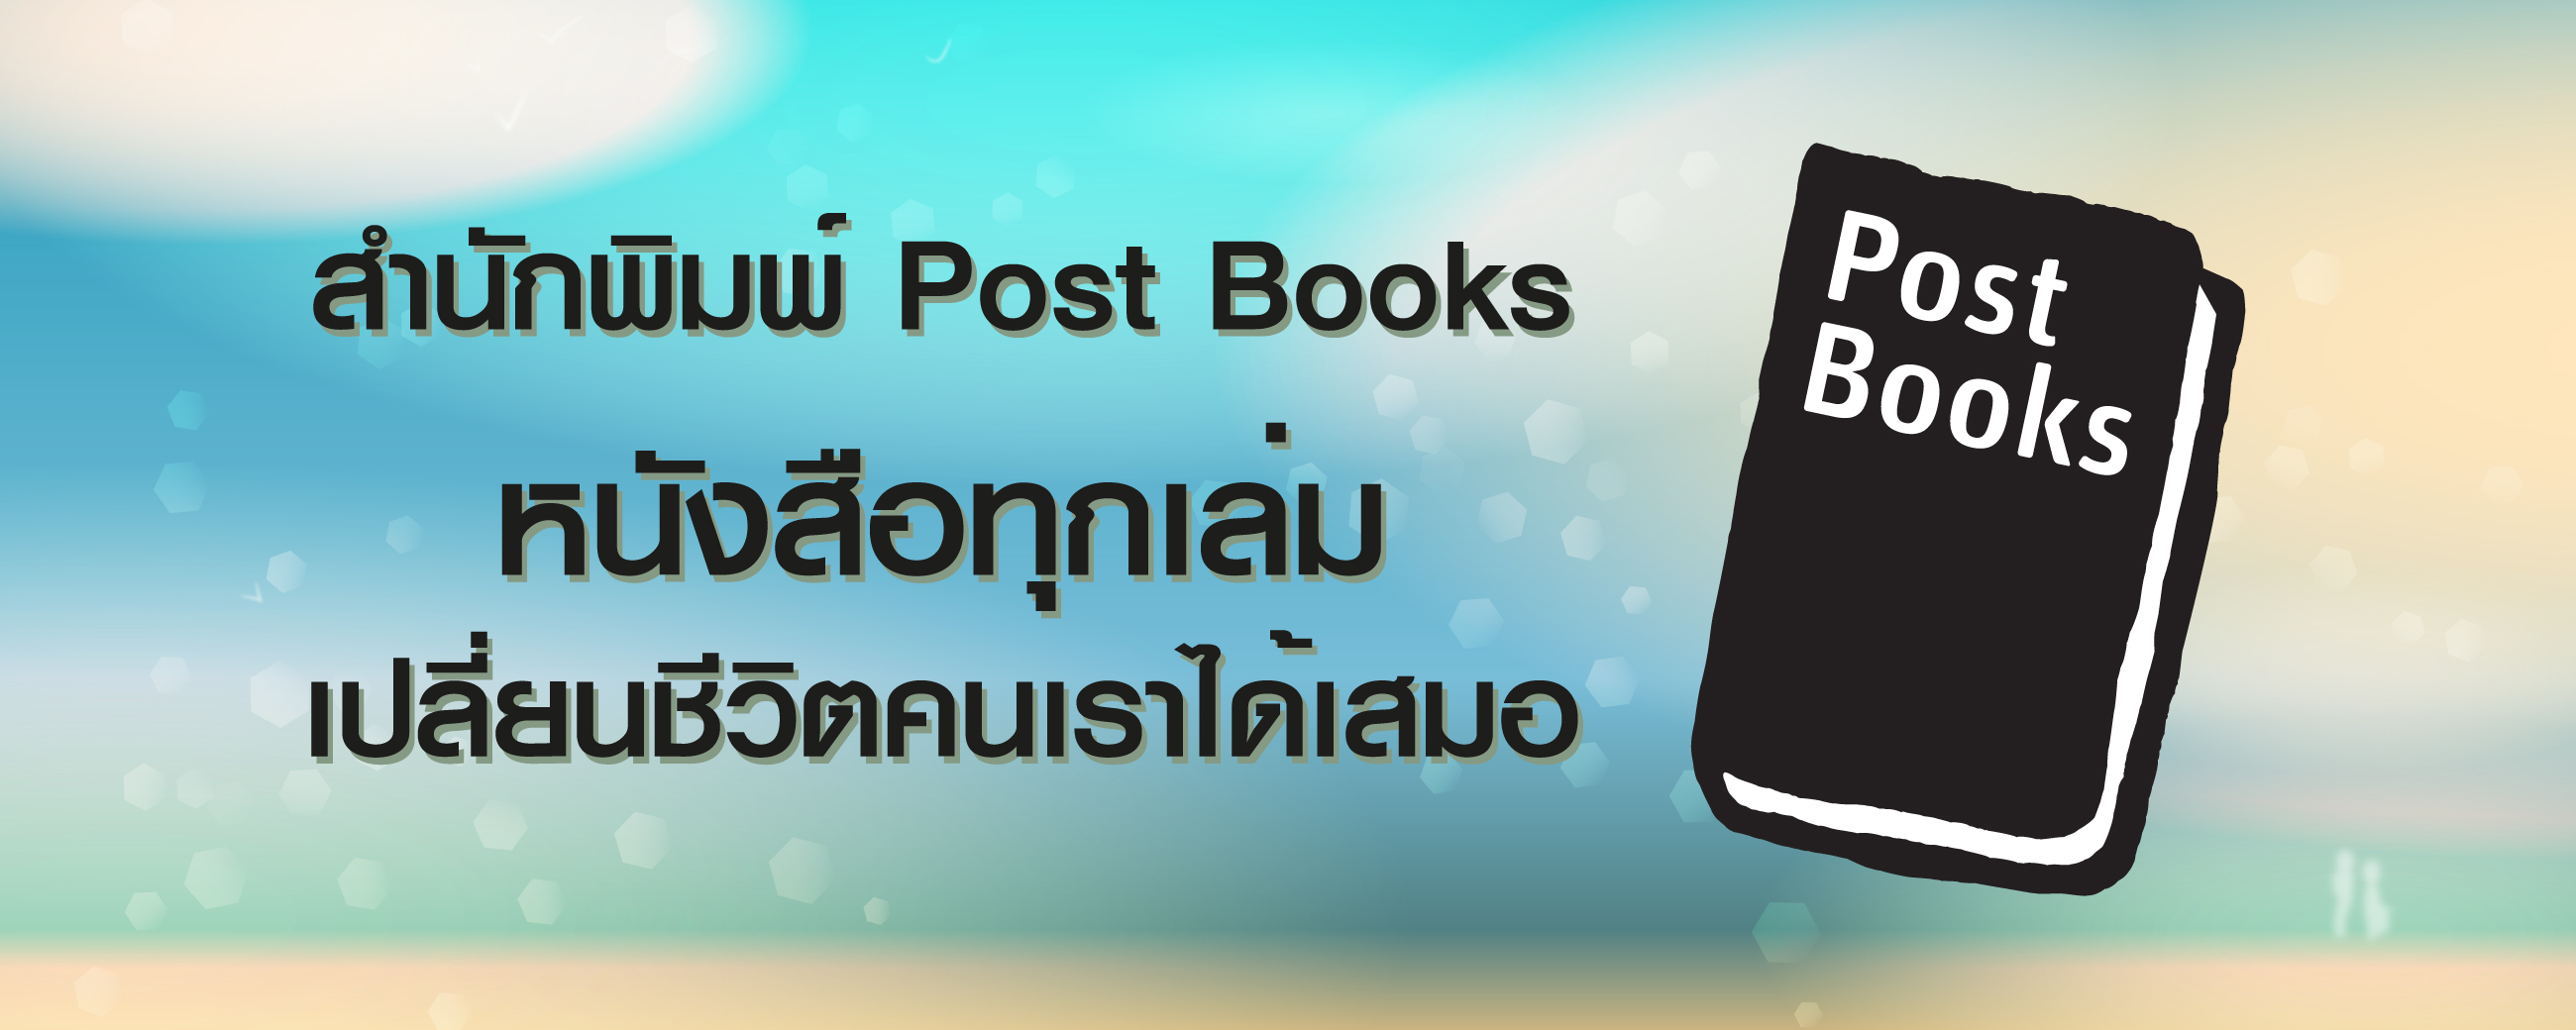 Post Books